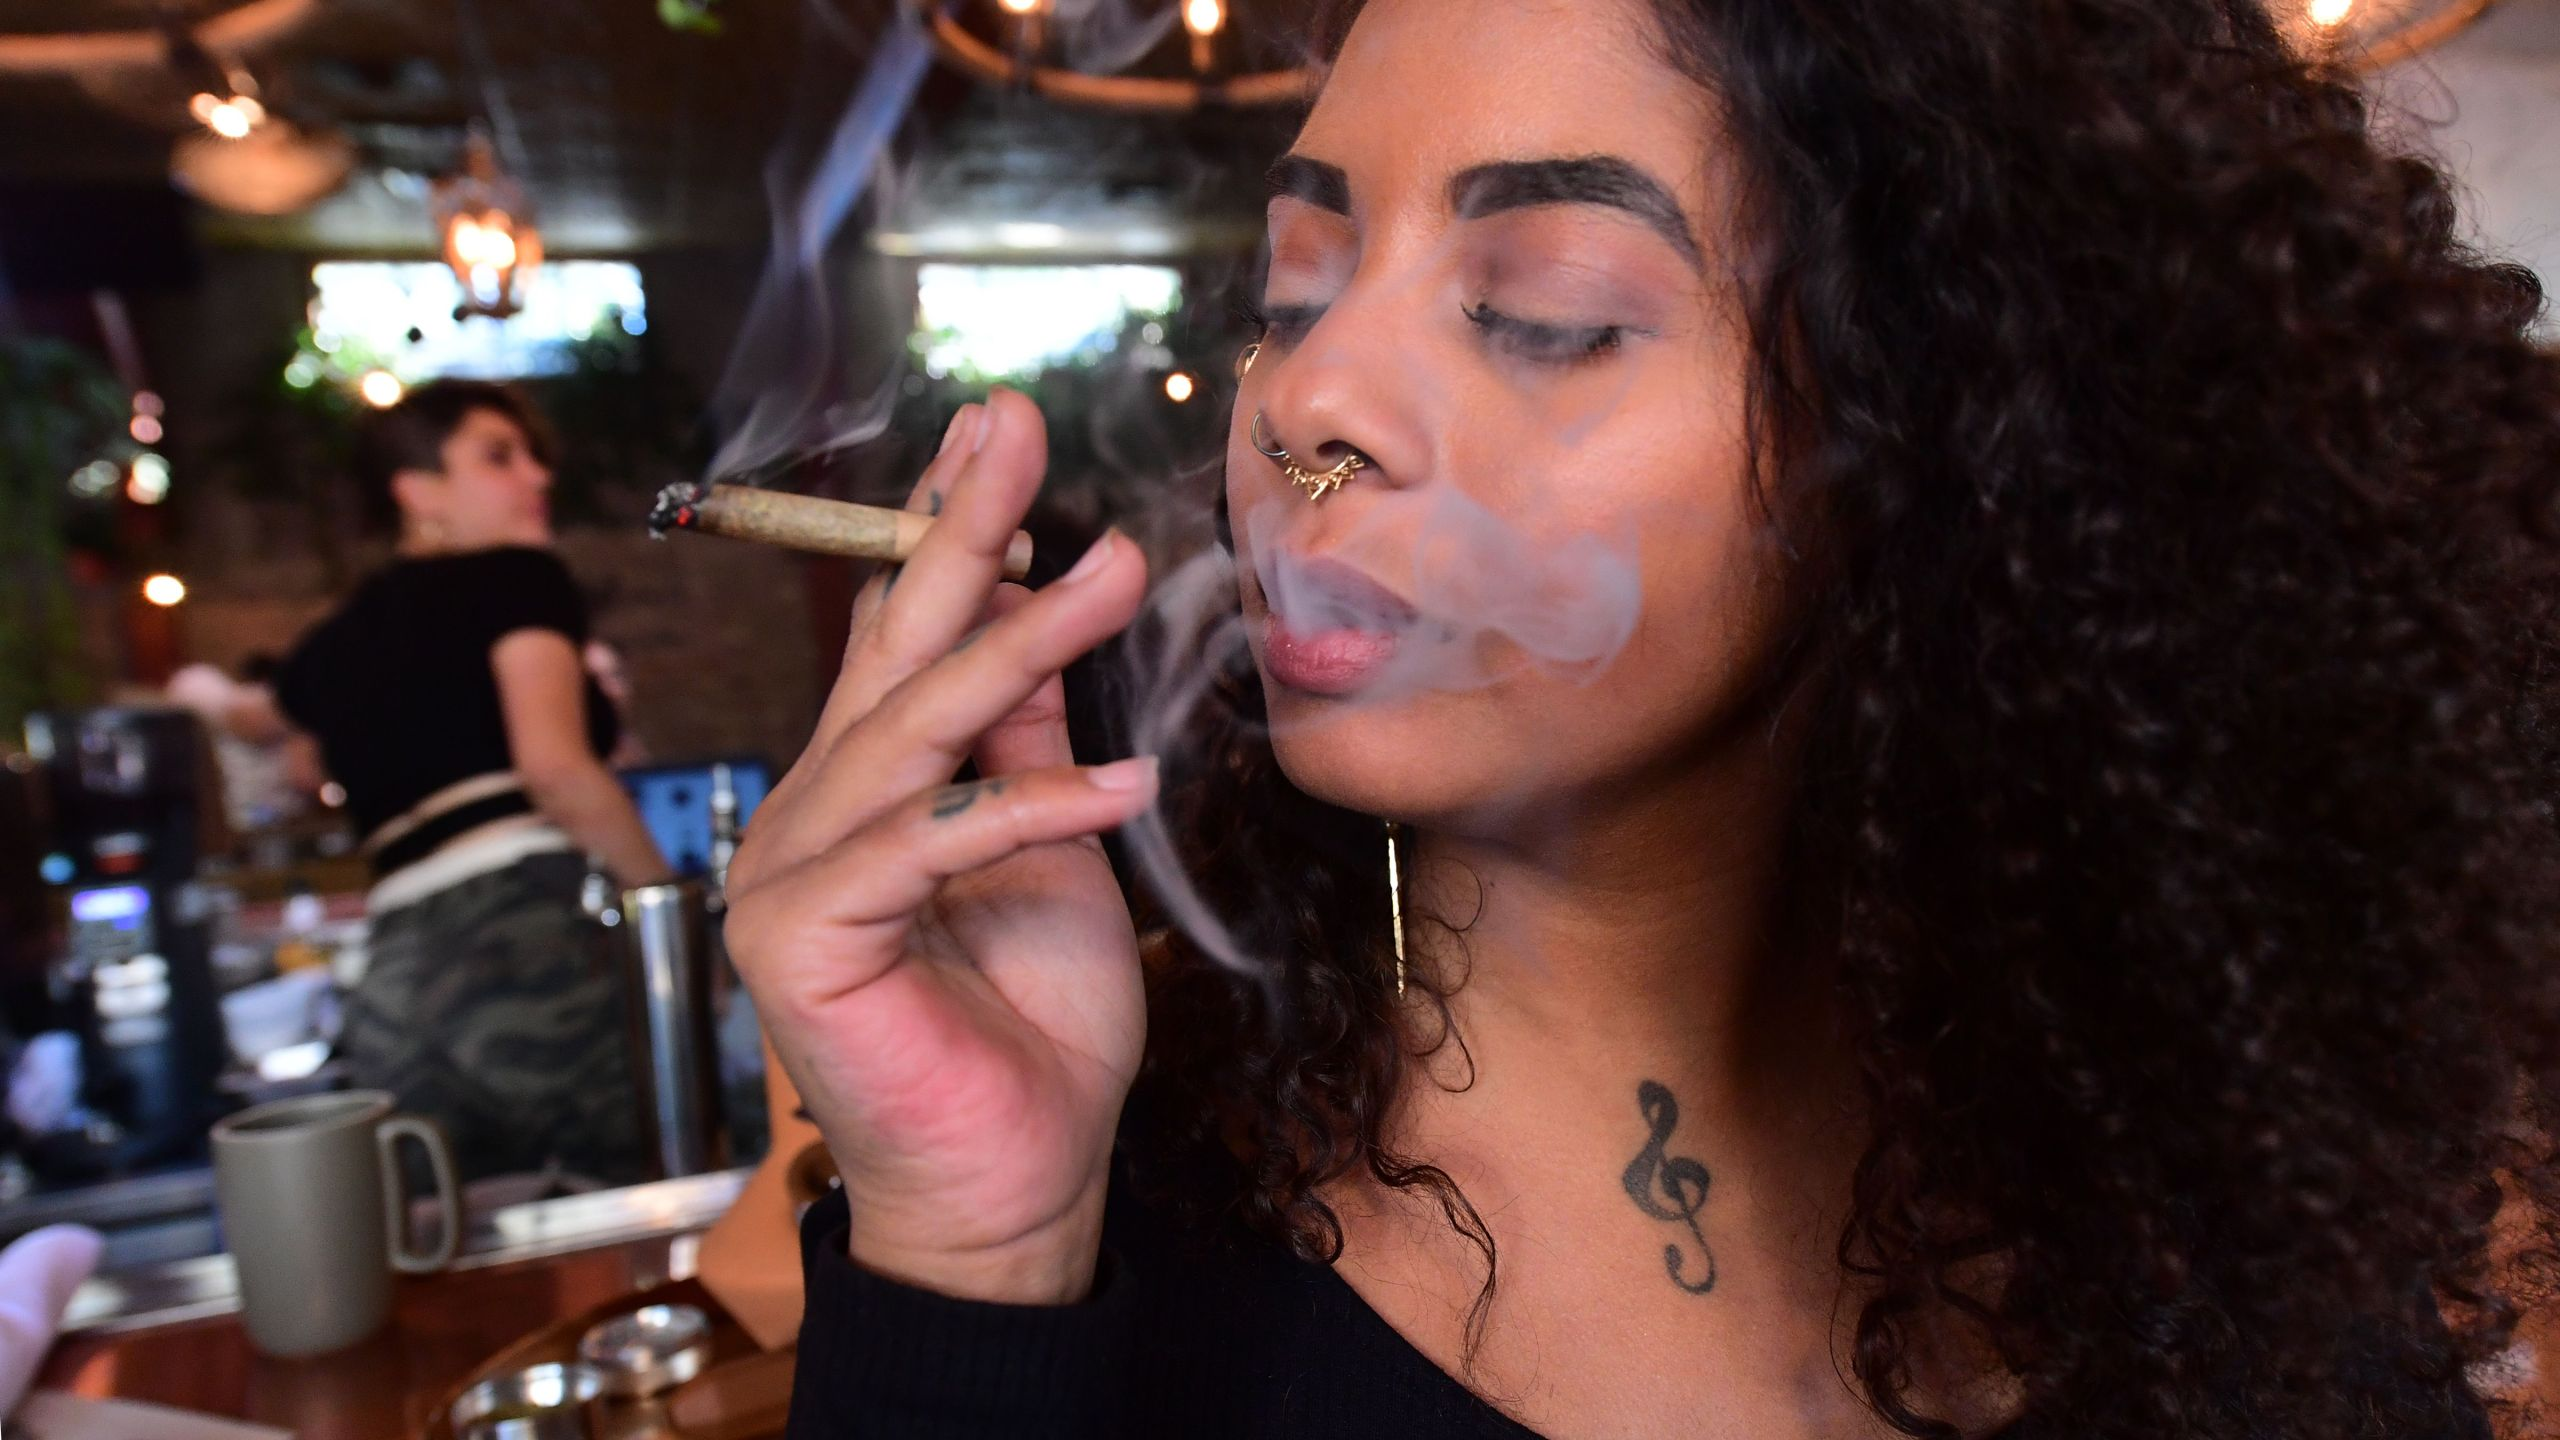 Kush Doleo smokes a joint at the Lowell Cafe in West Hollywood on Sept. 30, 2019, a day before its official opening. (Credit: Frederic J. Brown / AFP / Getty Images)